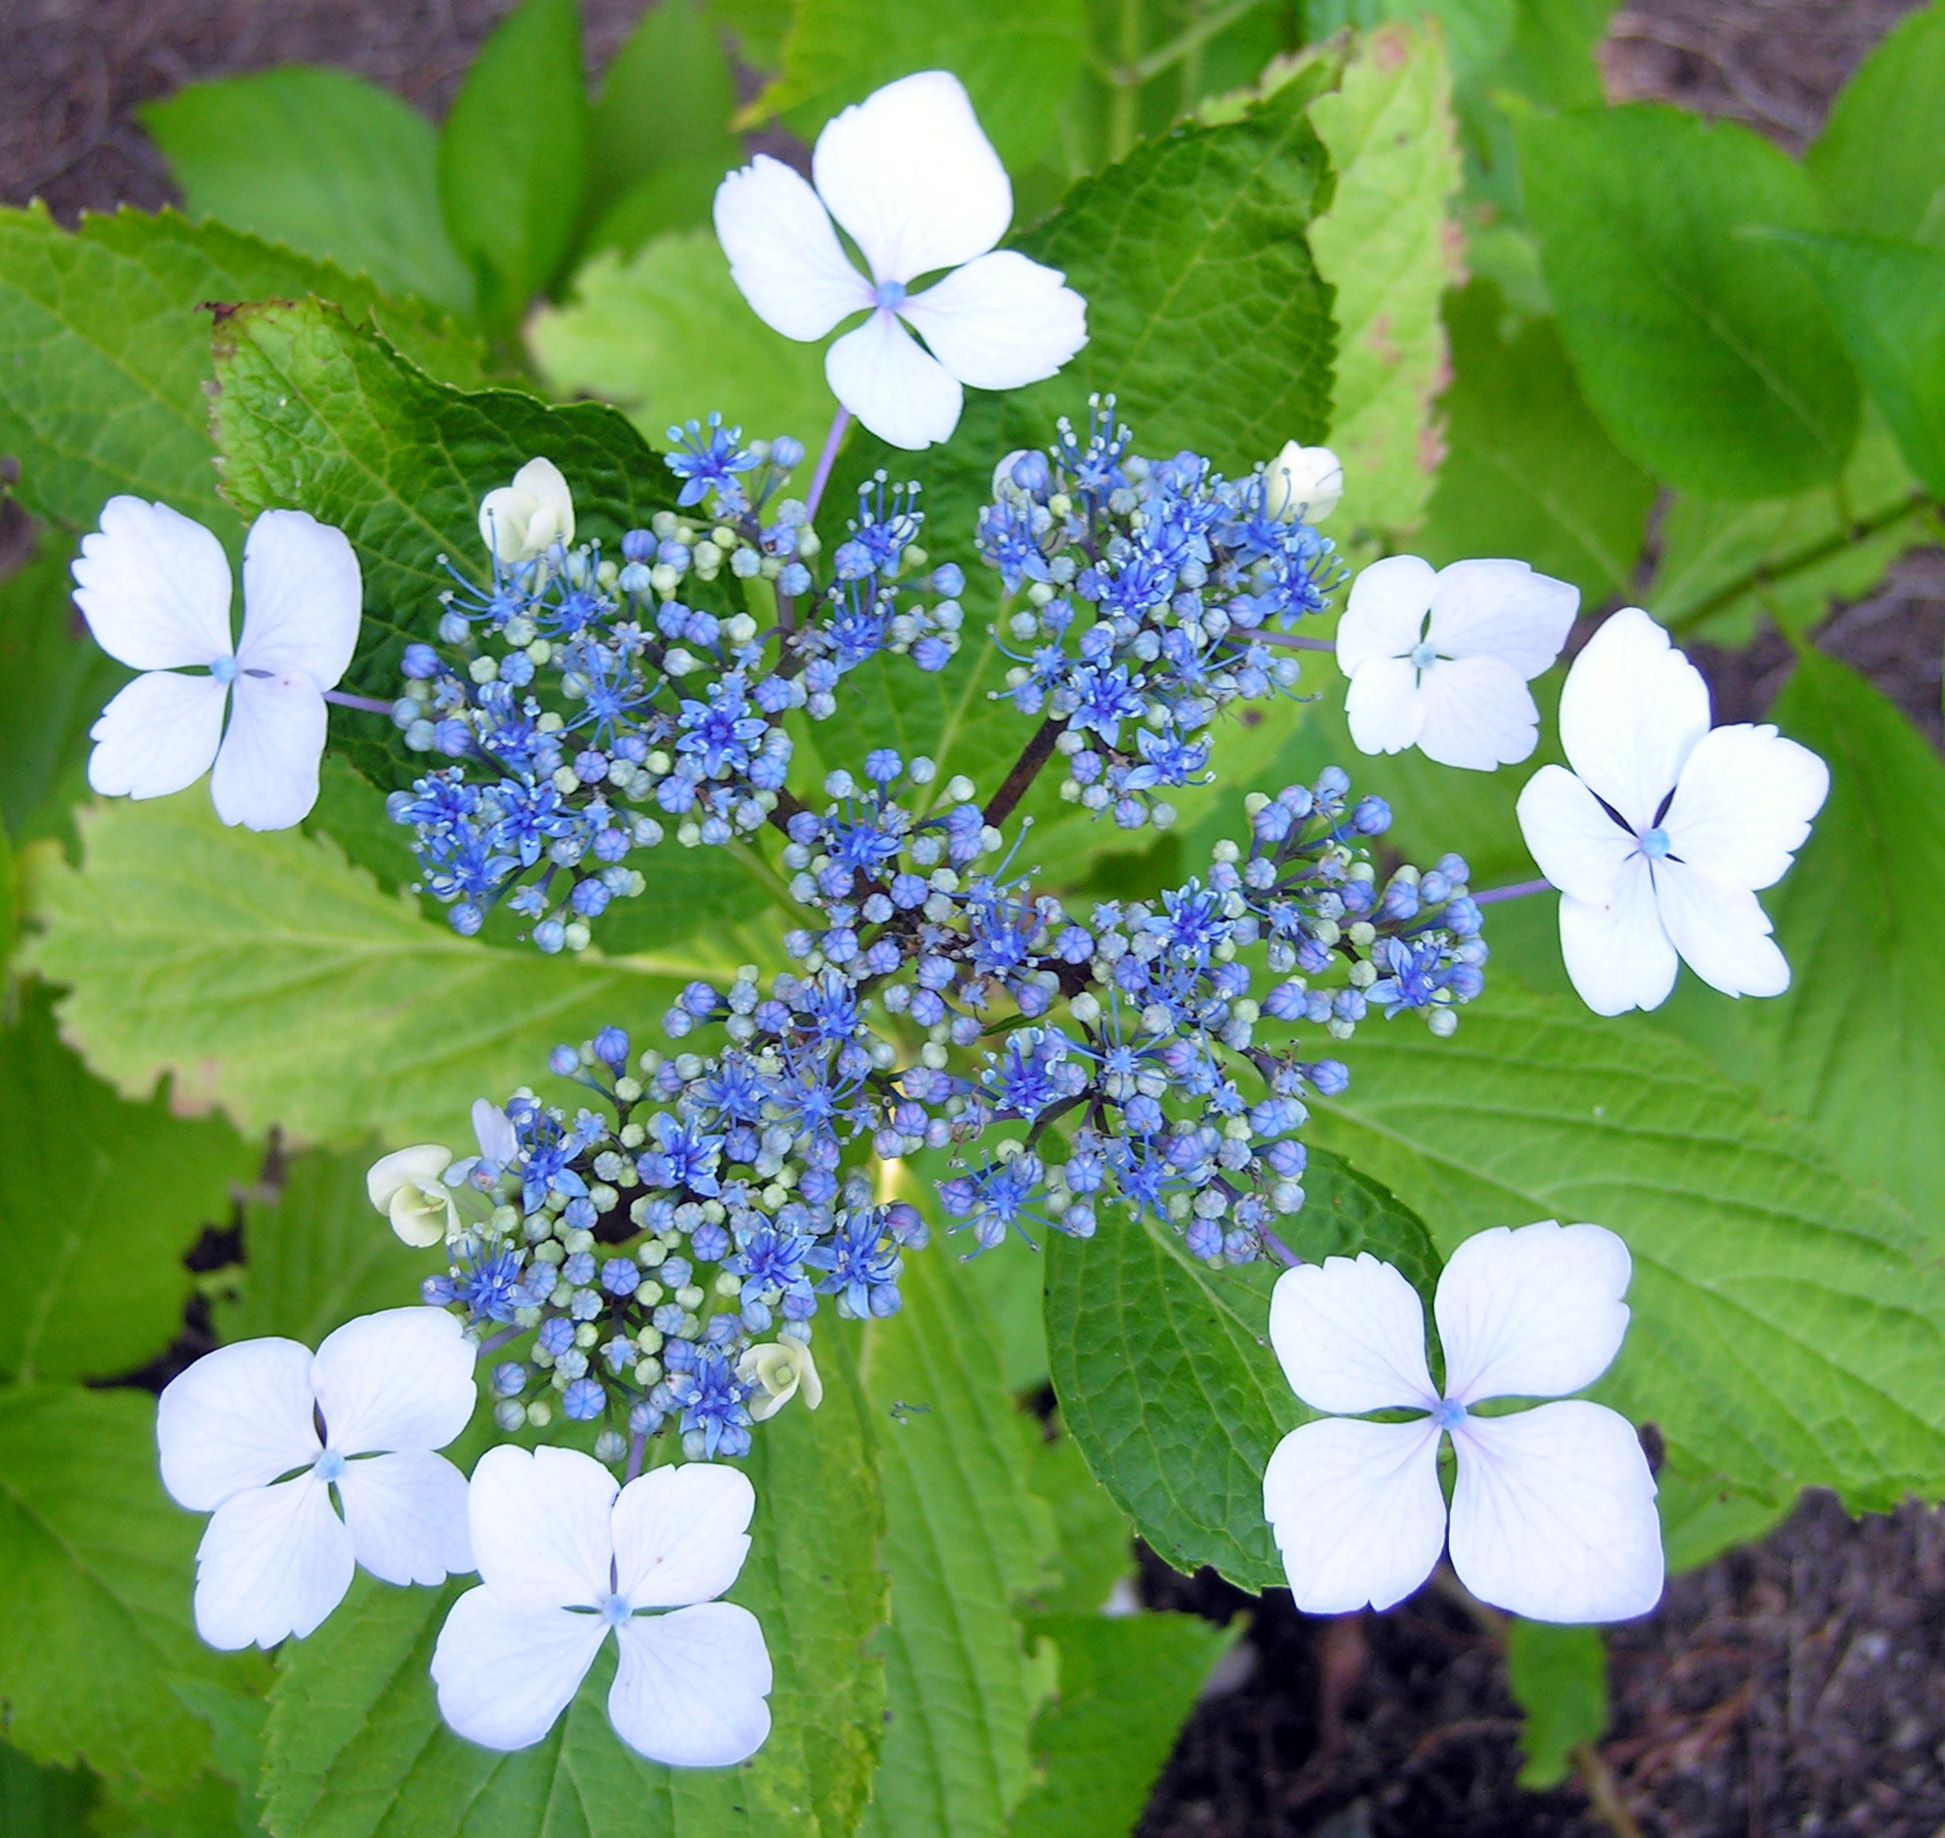 Hydrangea Serrata Grayswood Imported From Japan To England In 1888 Still Recognised As An Excellent Hydr Hydrangea Serrata Hydrangea Macrophylla Hydrangea